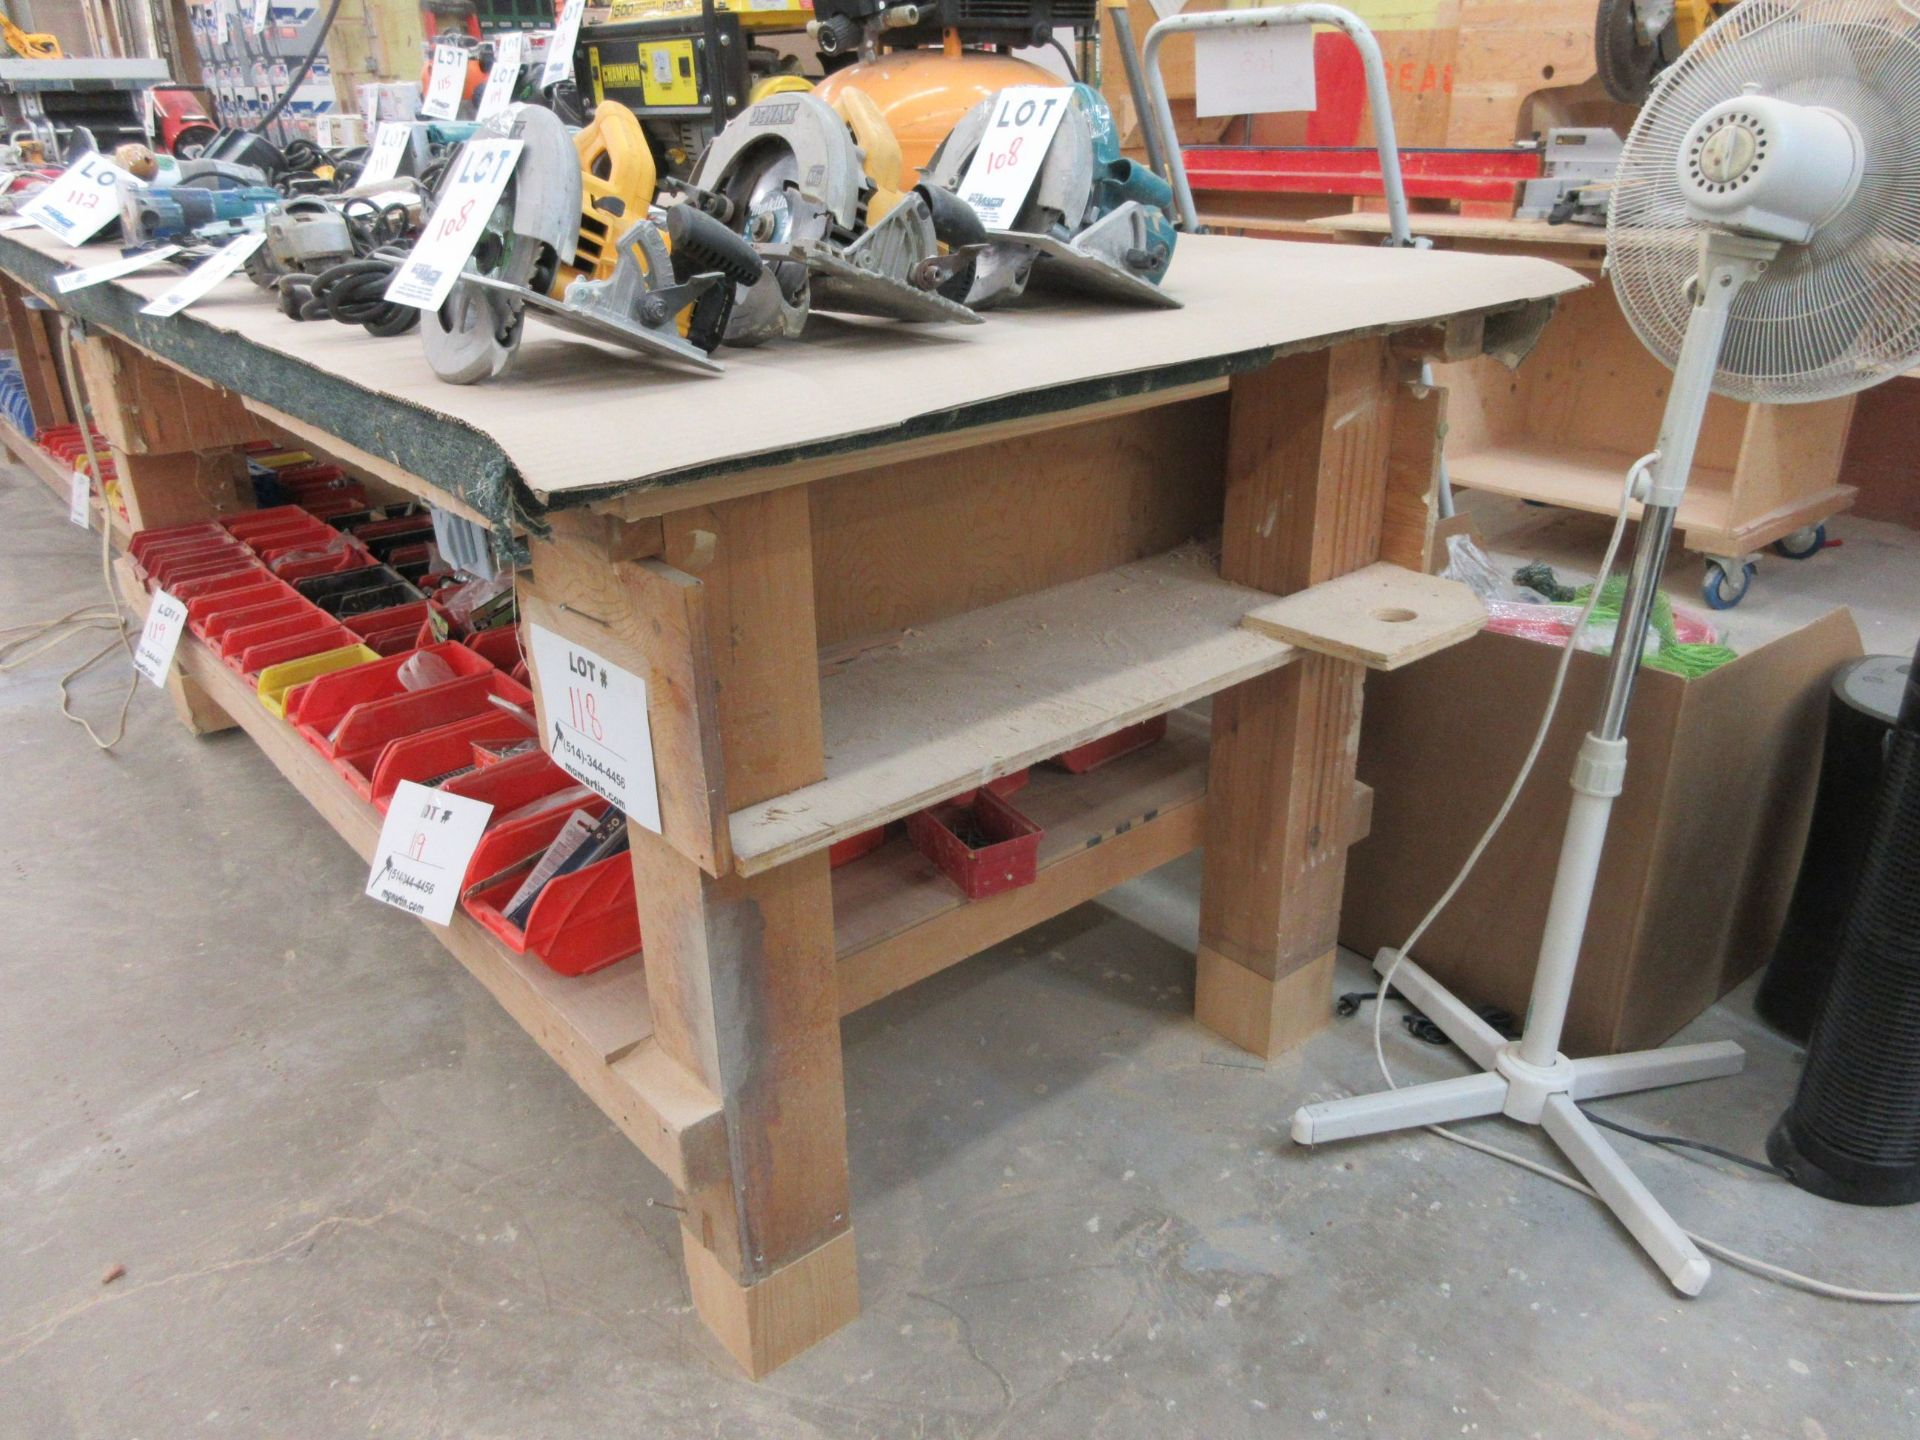 Lot 118 - Work tables c/w electrical outlets aprox 5ft x 8ft (2)